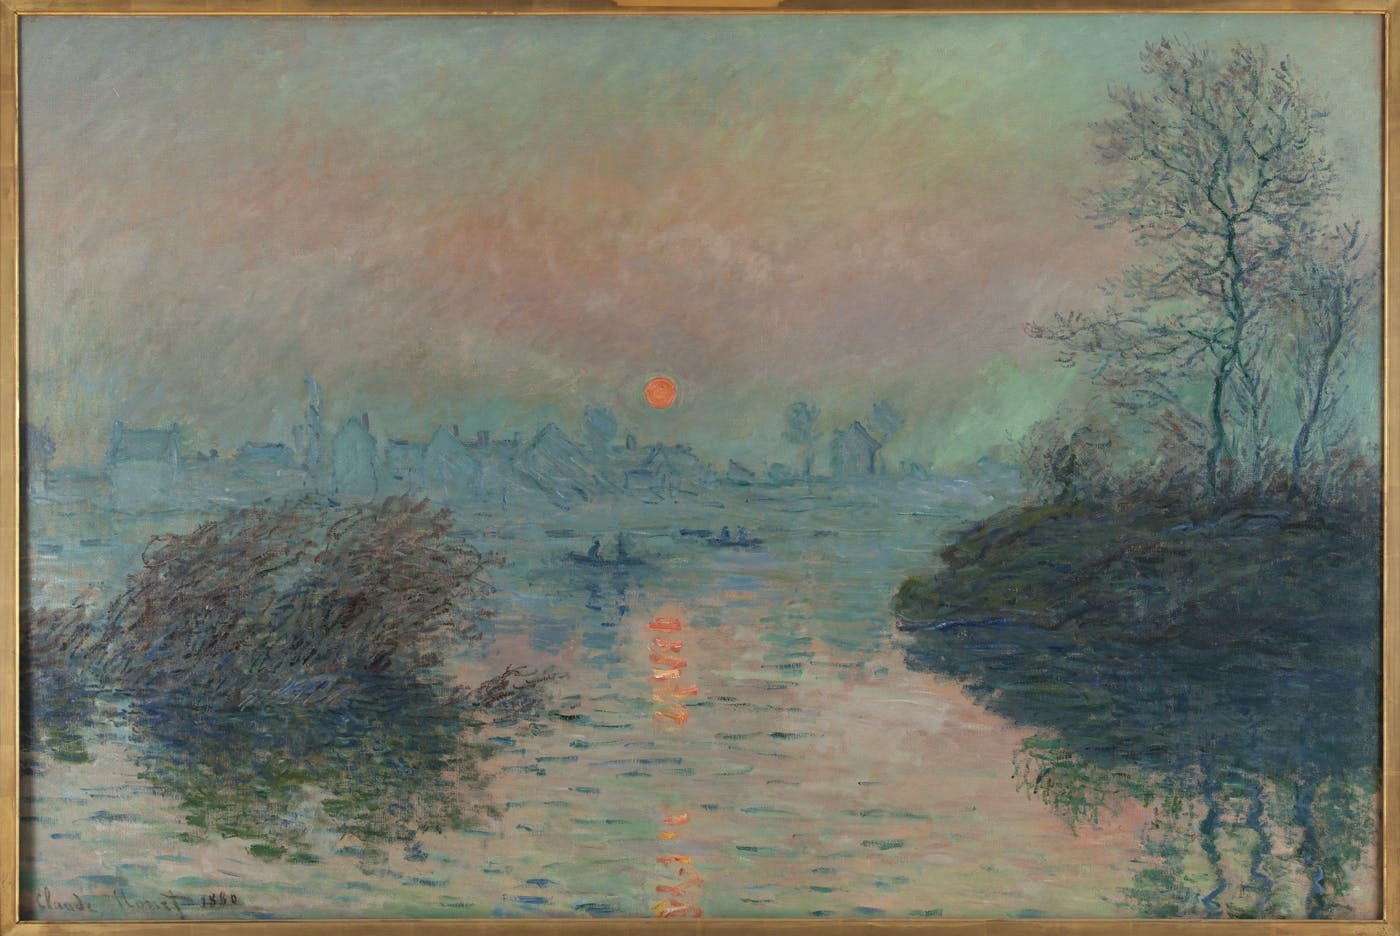 Soleil couchant sur la Seine à Lavacourt by Claude Monet, at Petit Palais, Paris.